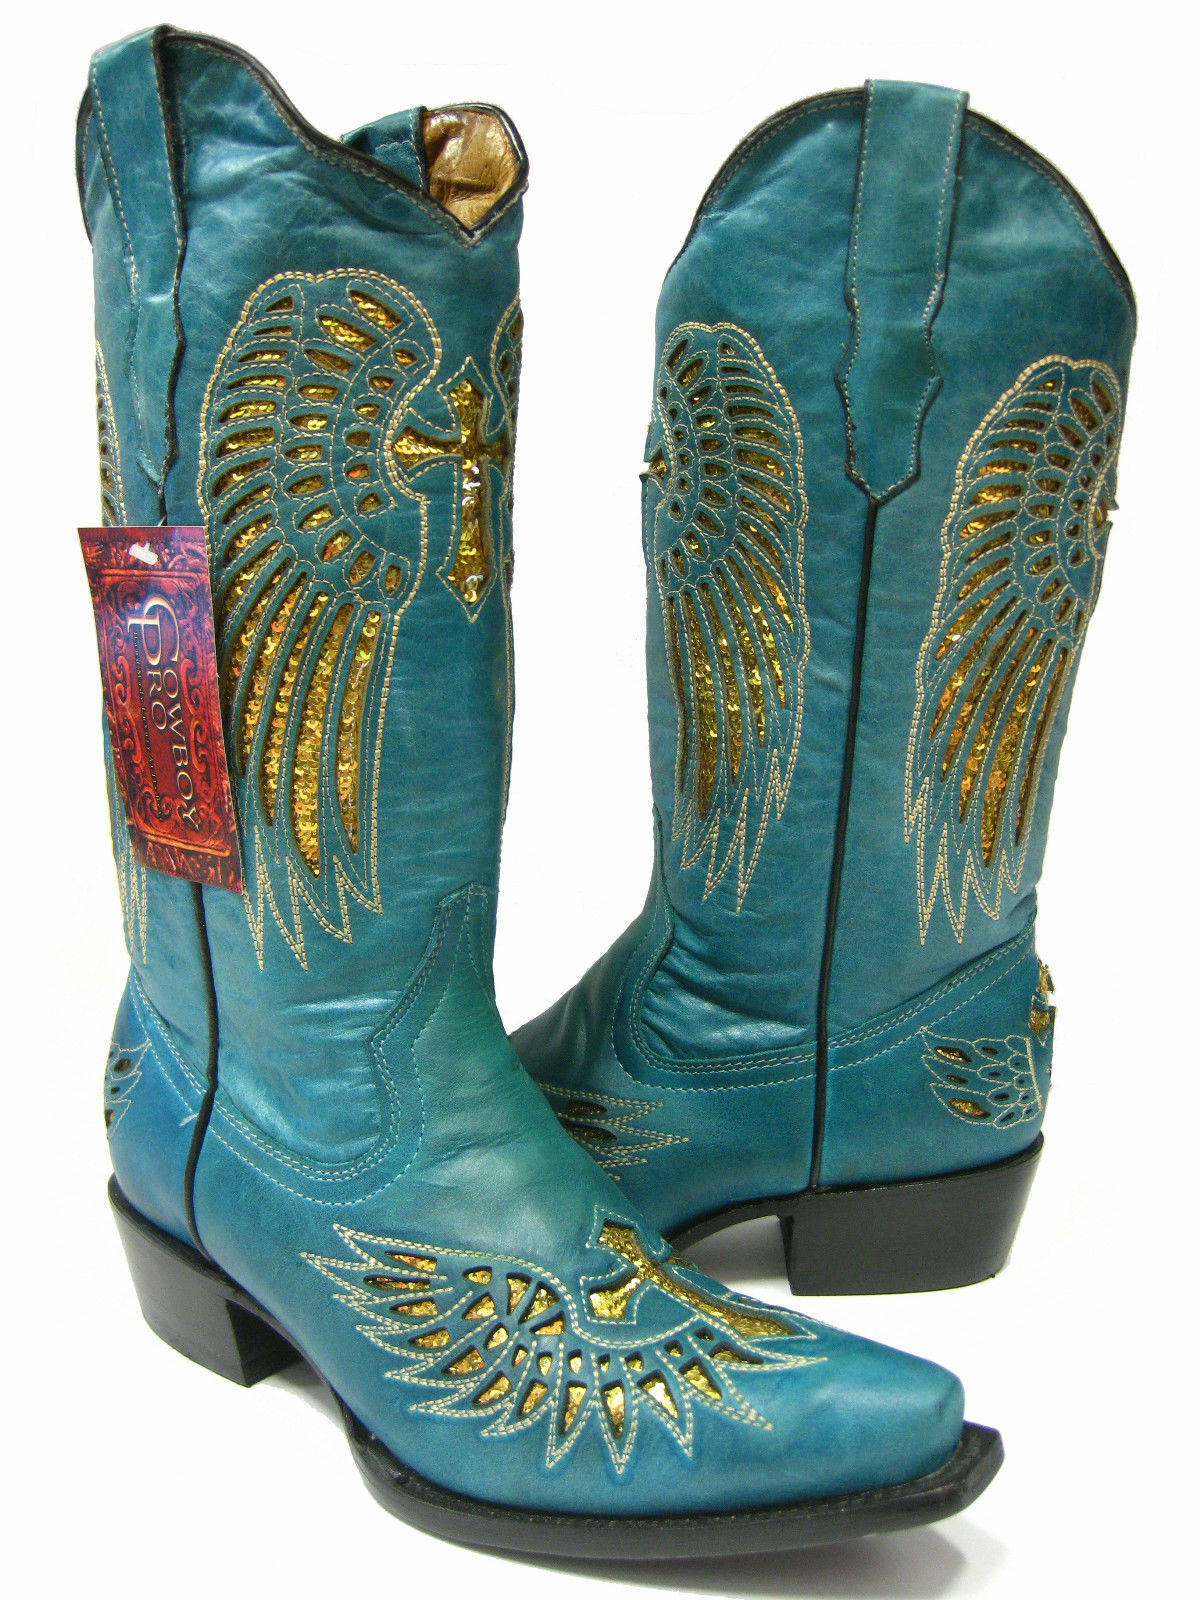 Wouomo Turquoise Cross Wings Inlay oro Sequins Leather Cowboy stivali Snip Toe